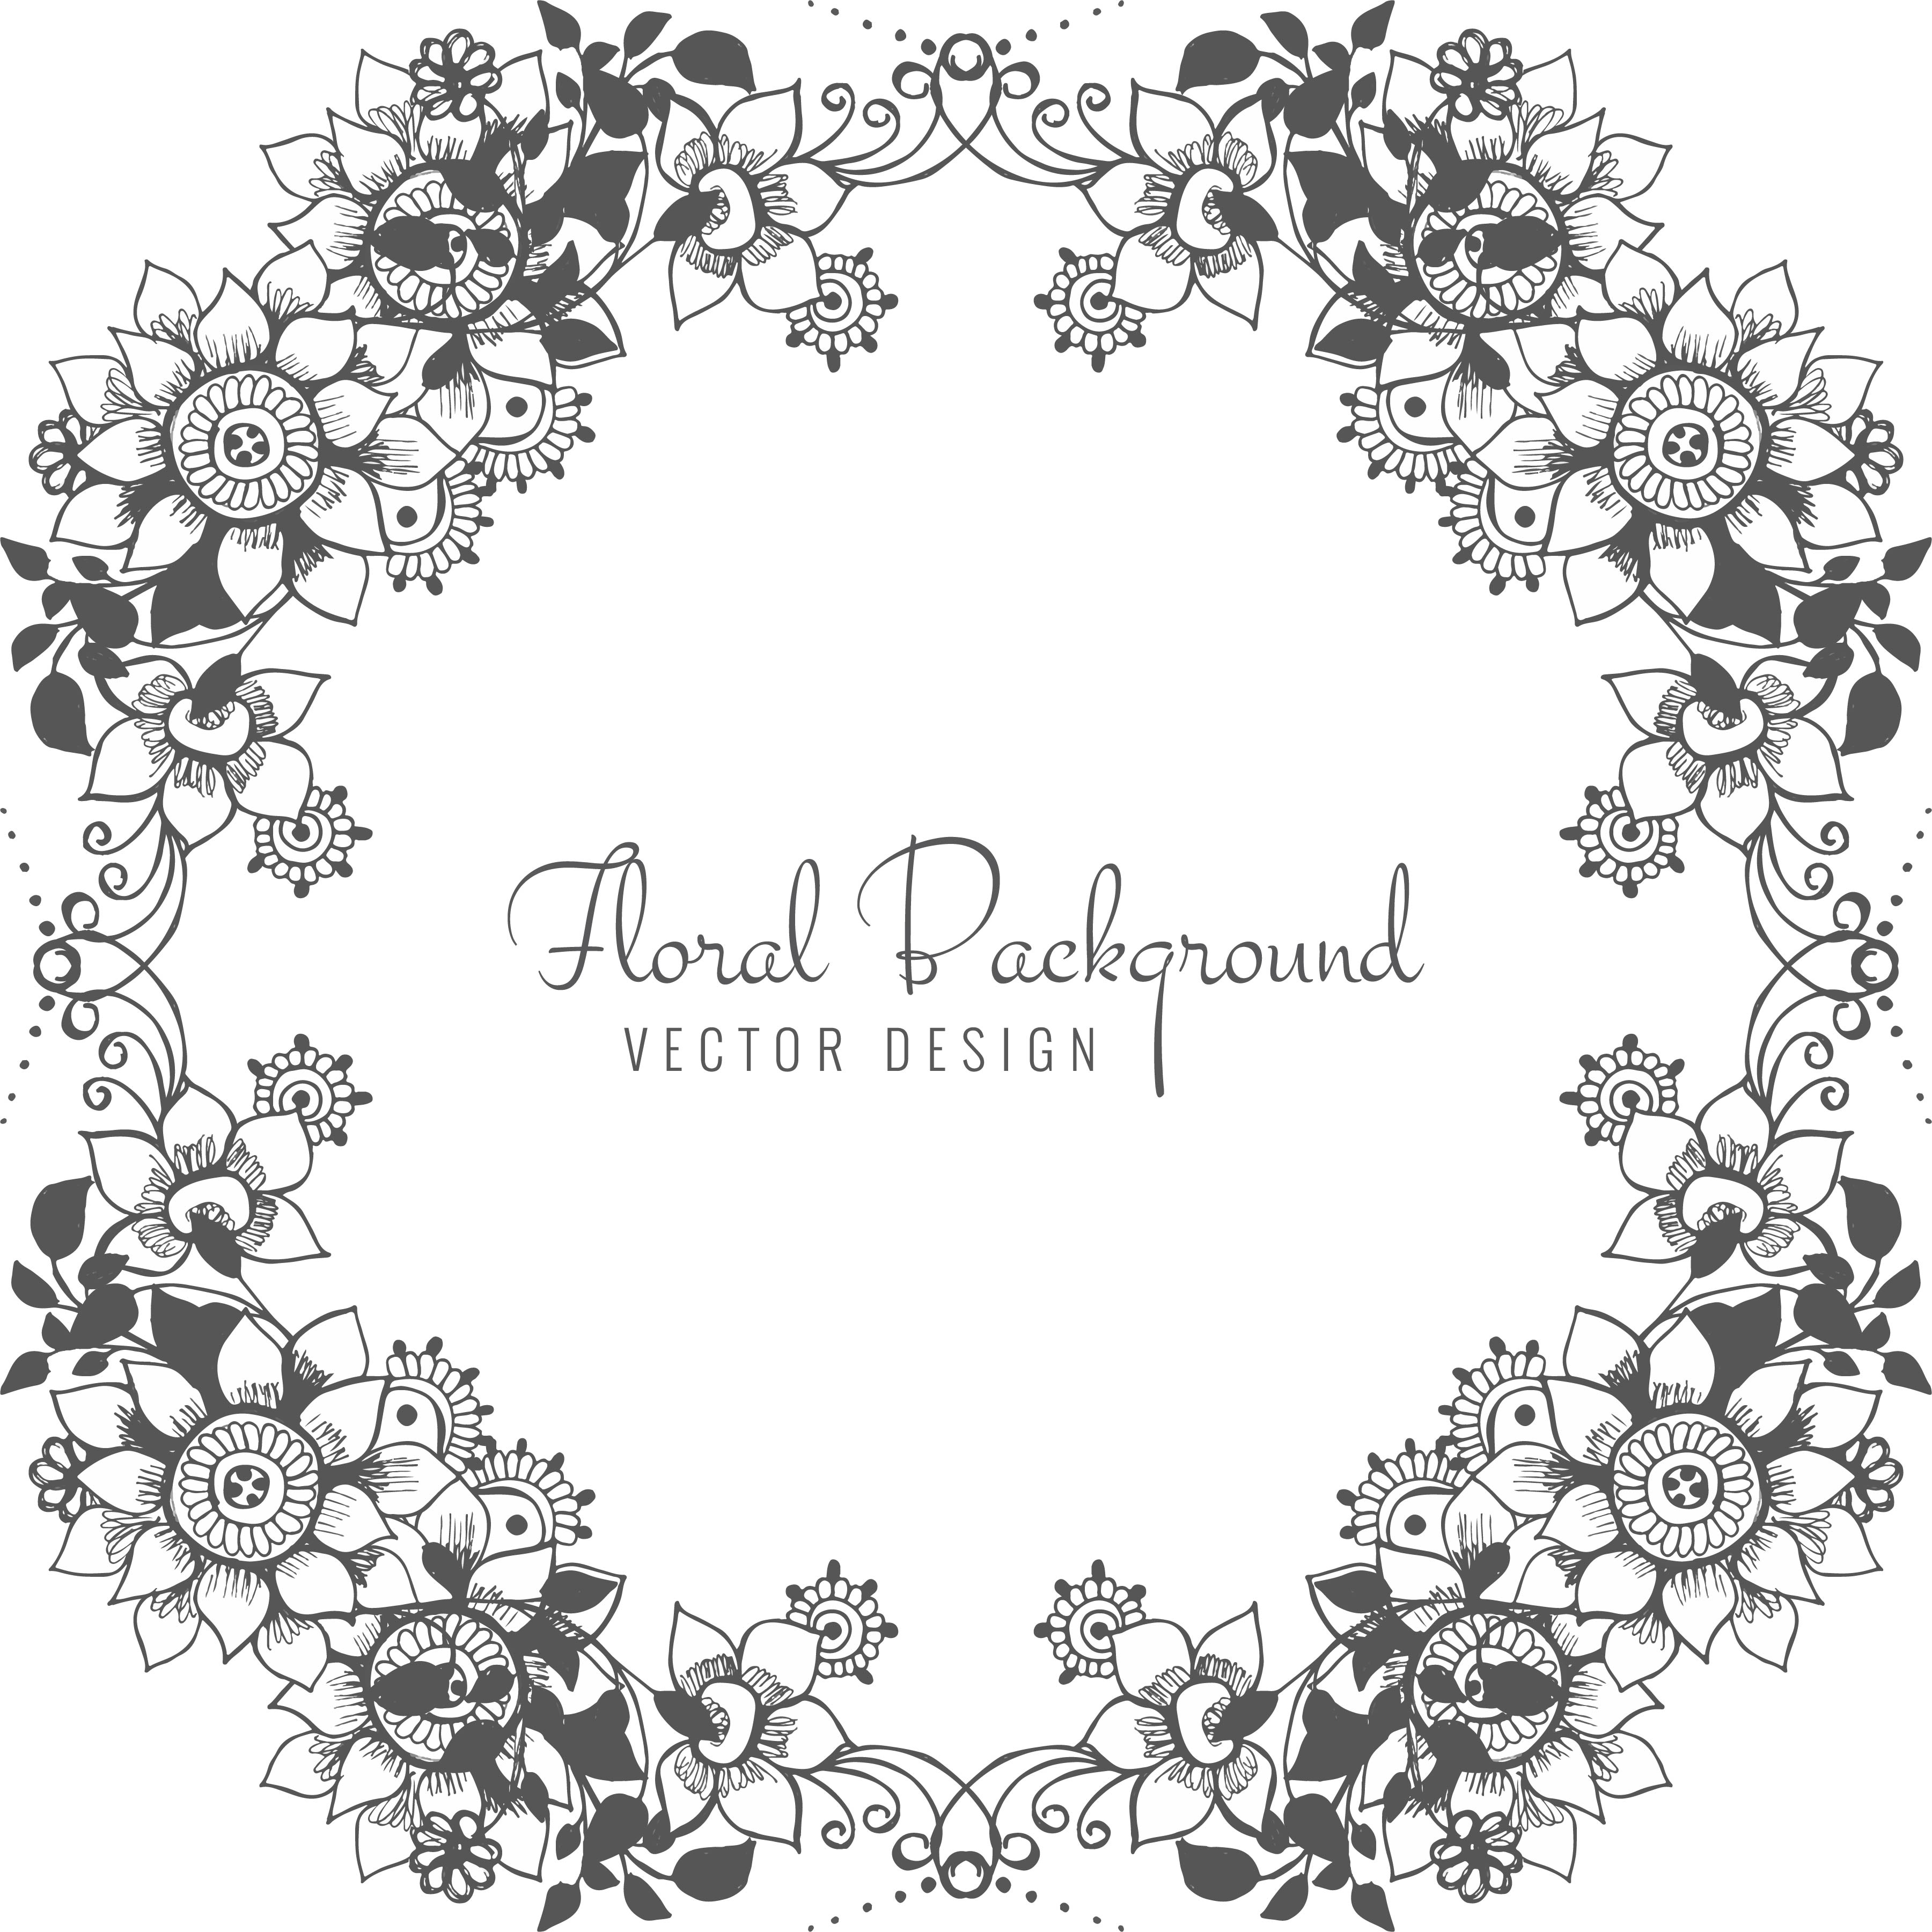 Abstract Flower Background With Decoration Elements For: Abstract Decorative Wedding Floral Background